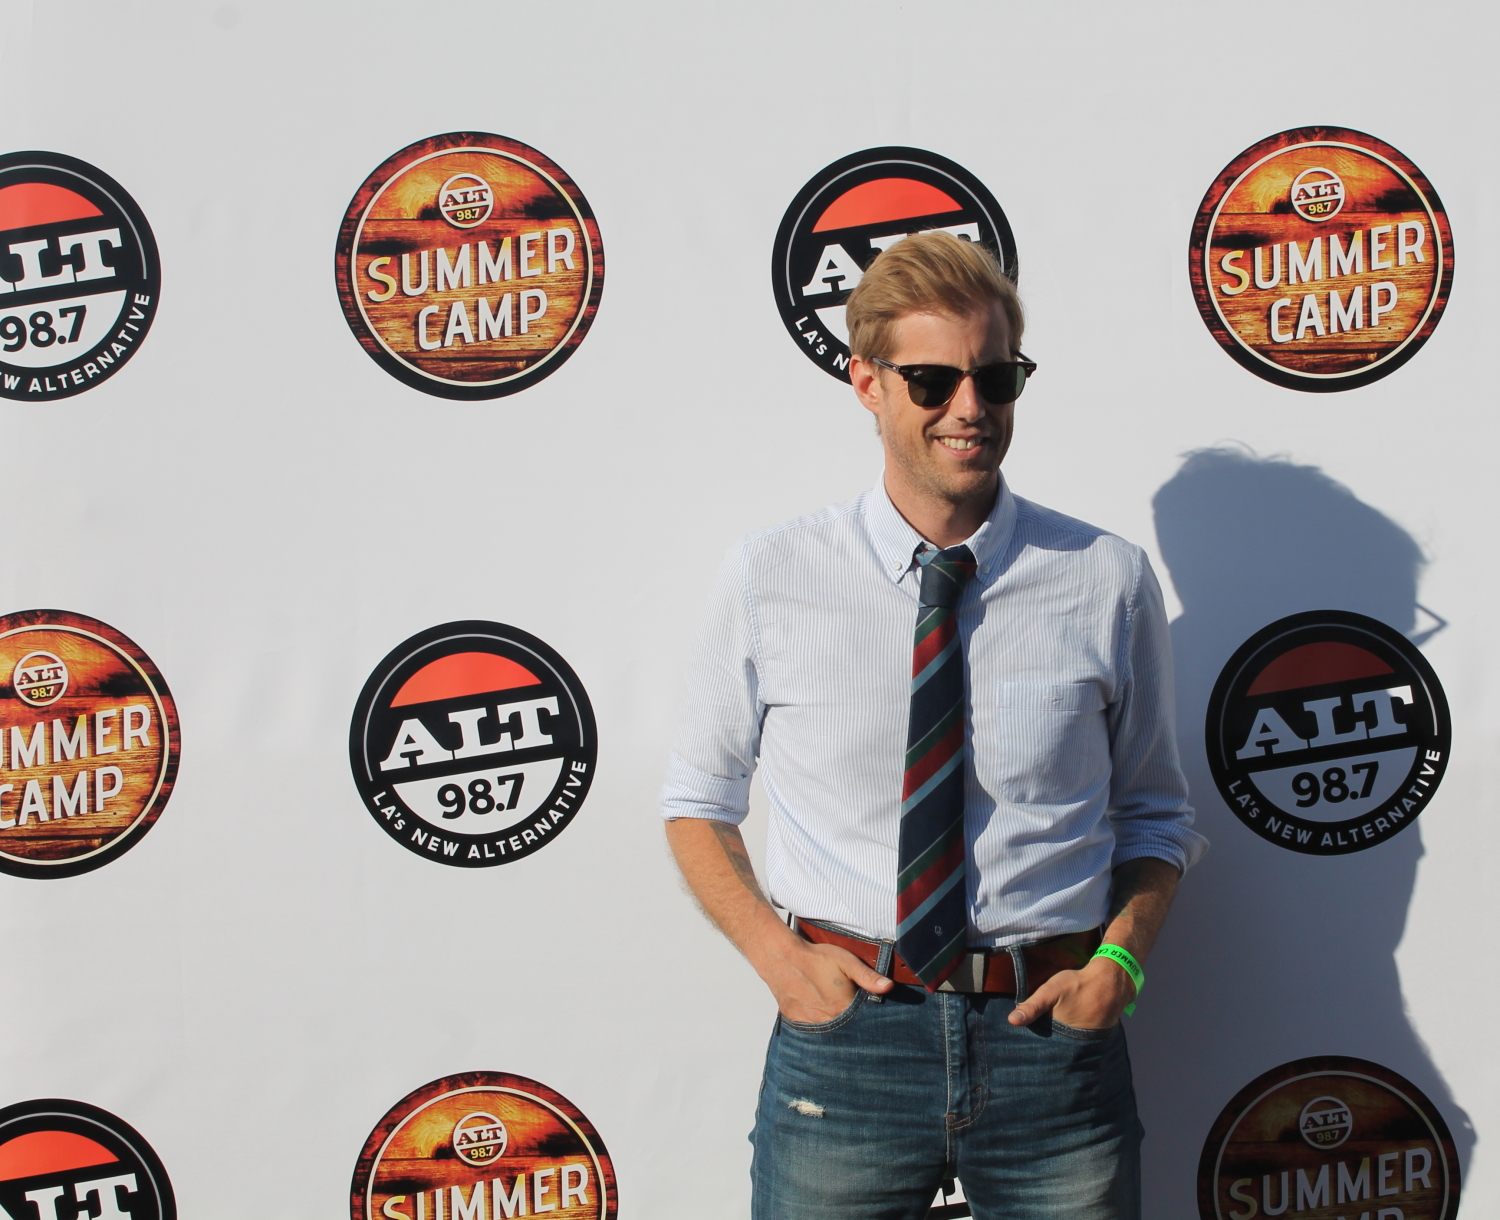 Andrew McMahon looking sharp